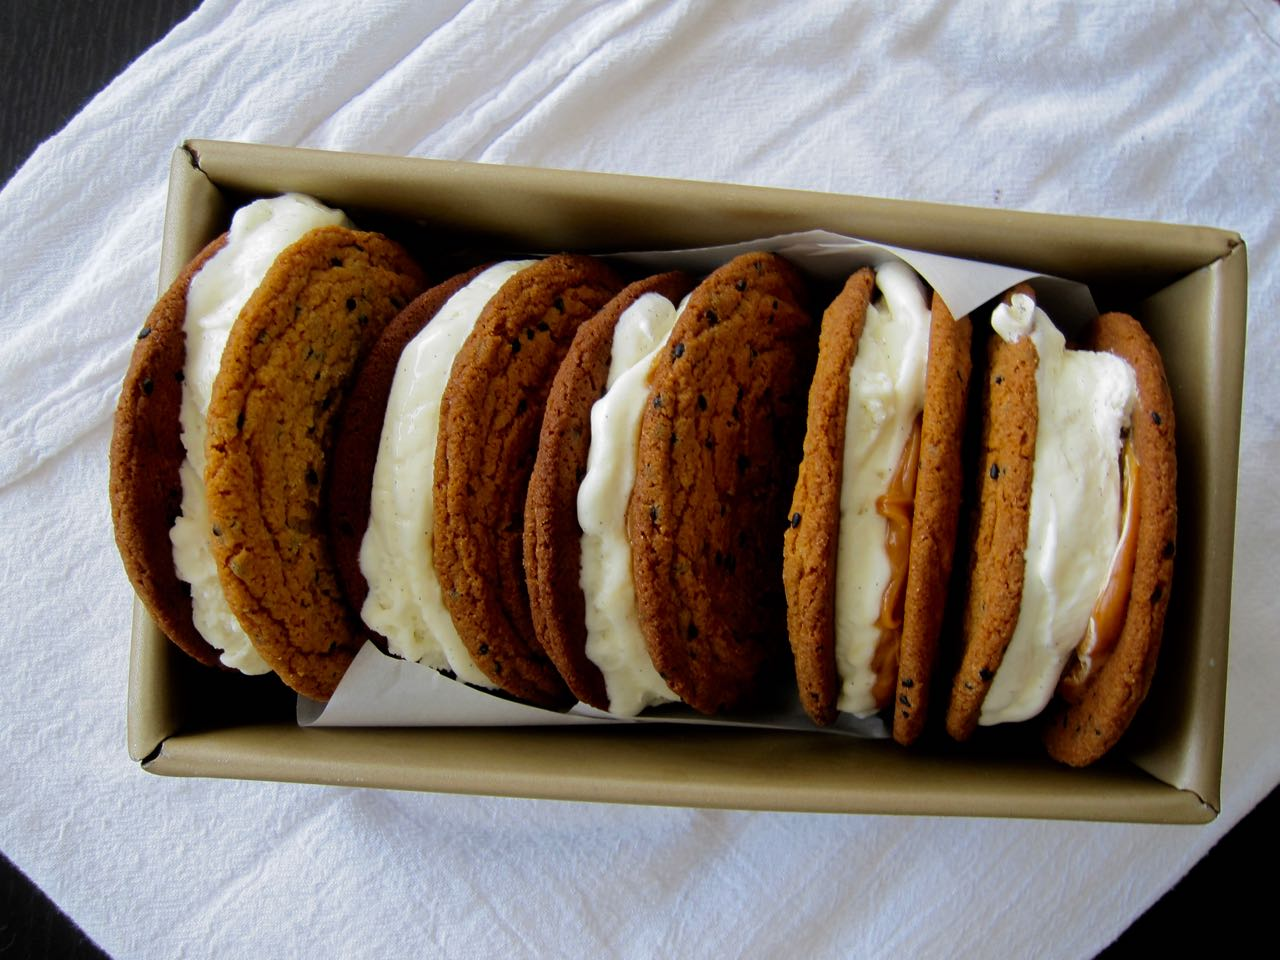 Black Sesame Cookie & Vanilla Ice Cream Sandwiches with Miso Caramel